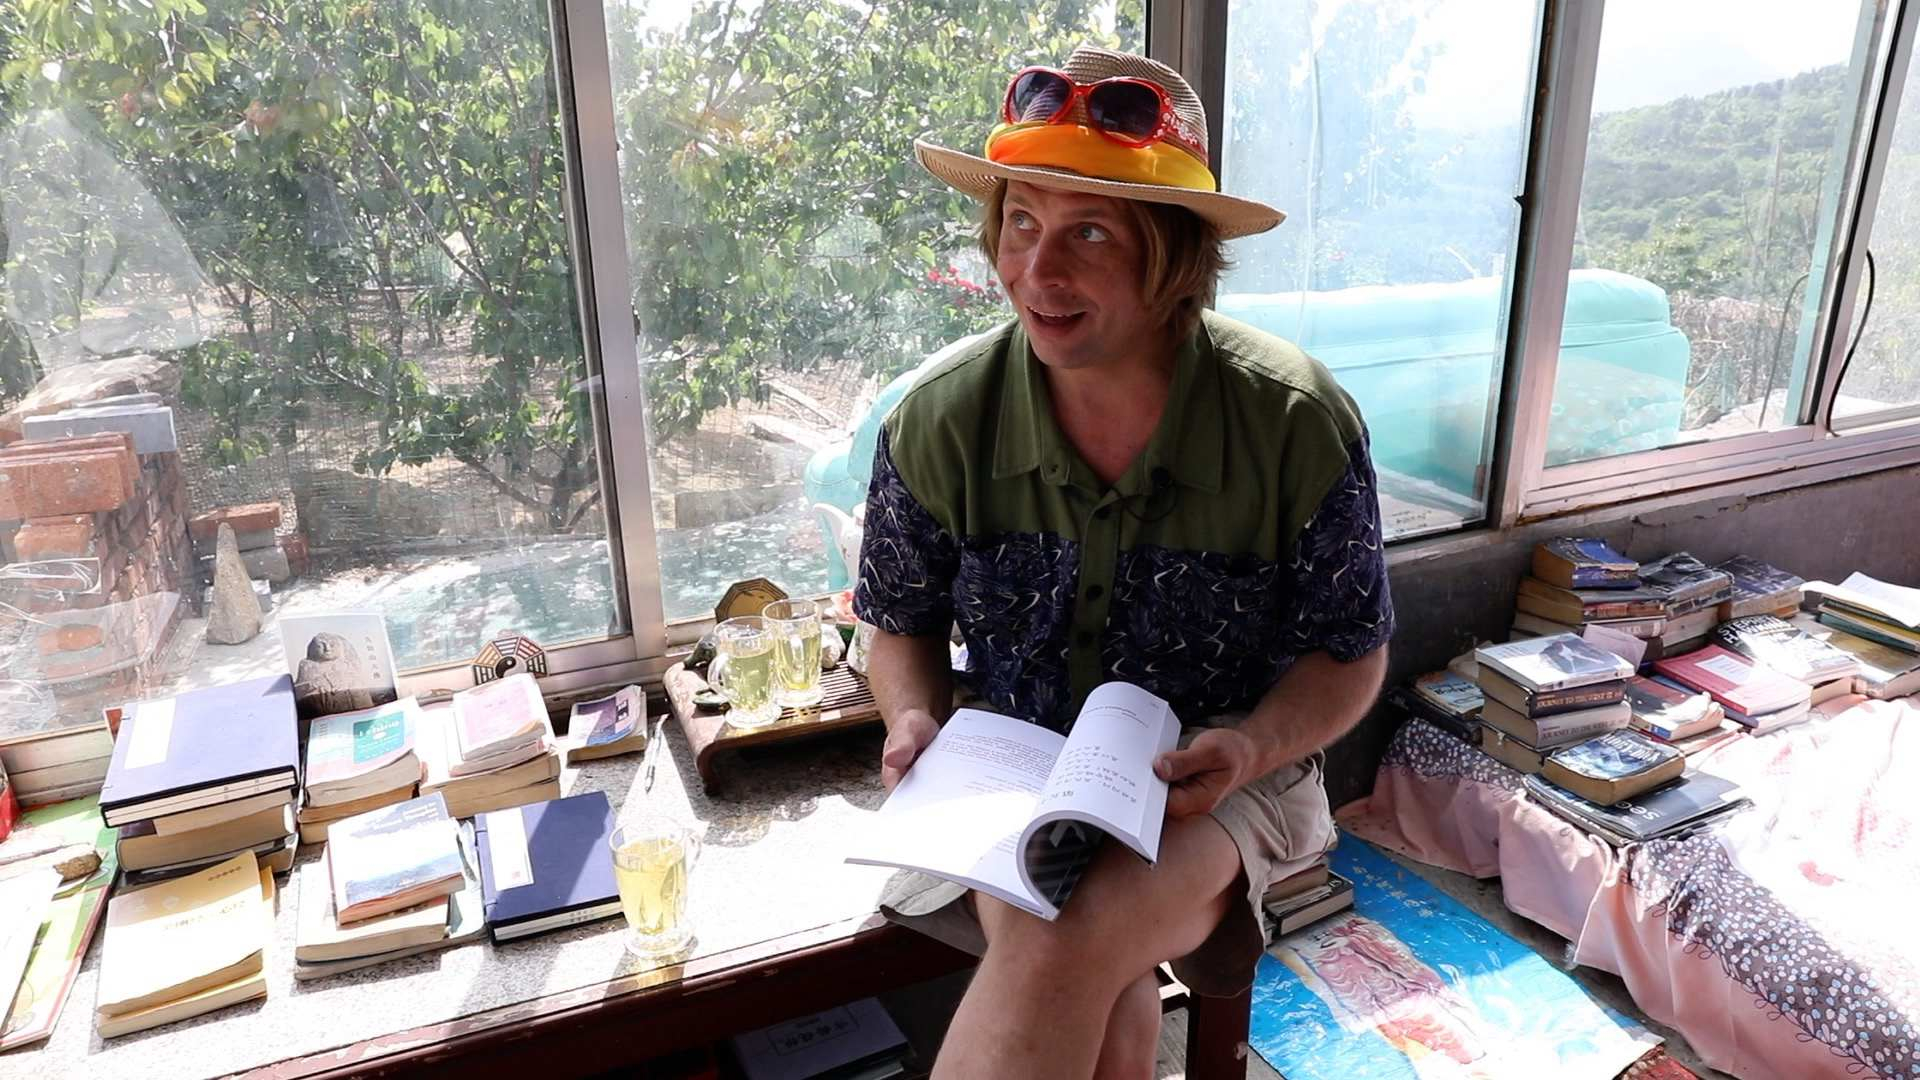 The hippie American translator: I am rather fluent in ancient Chinese